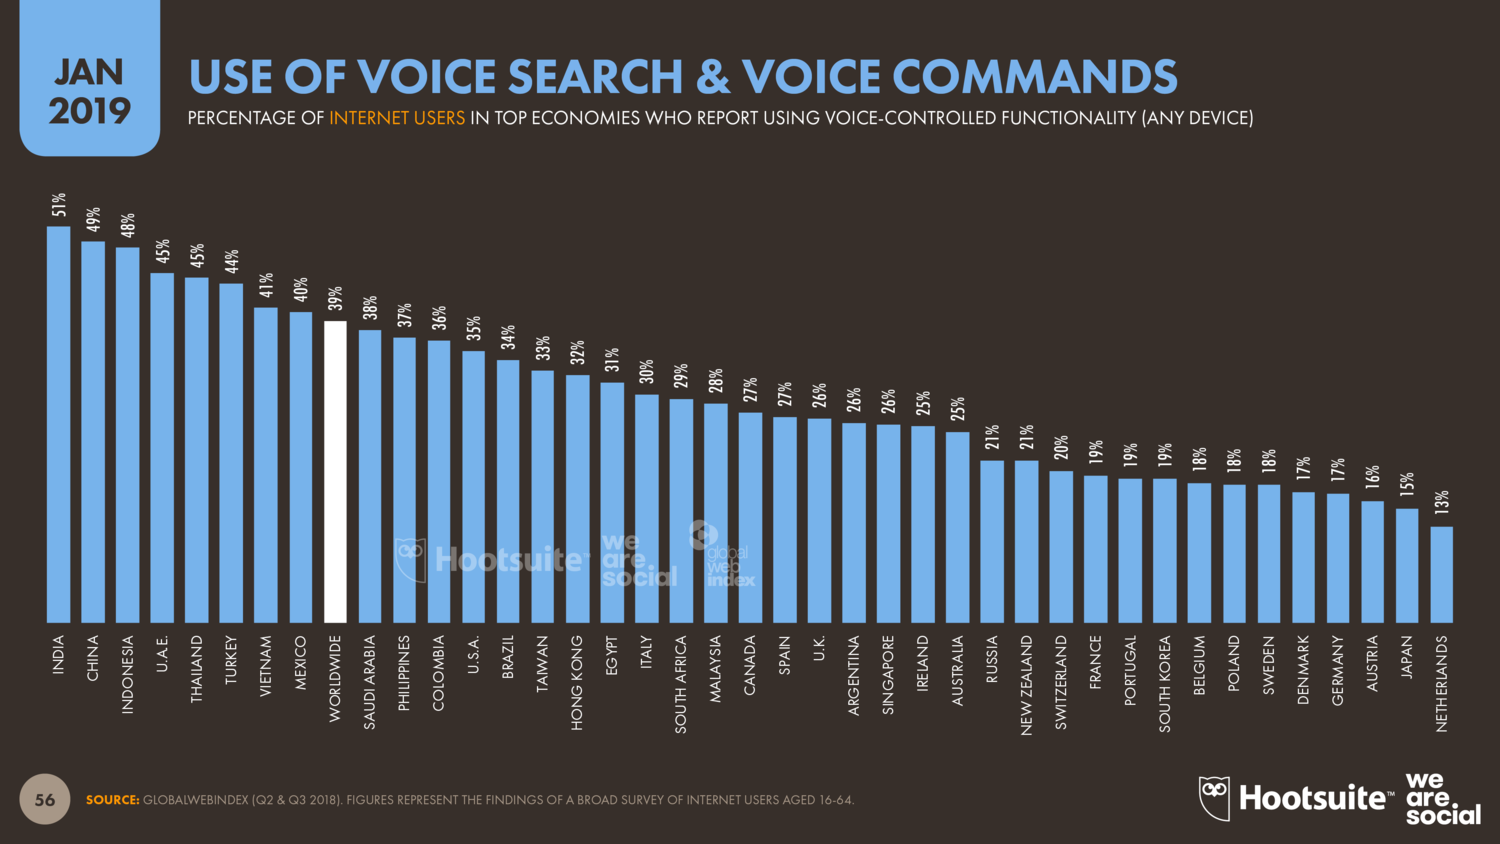 Global+Use+of+Voice+Control+January+2019+DataReportal